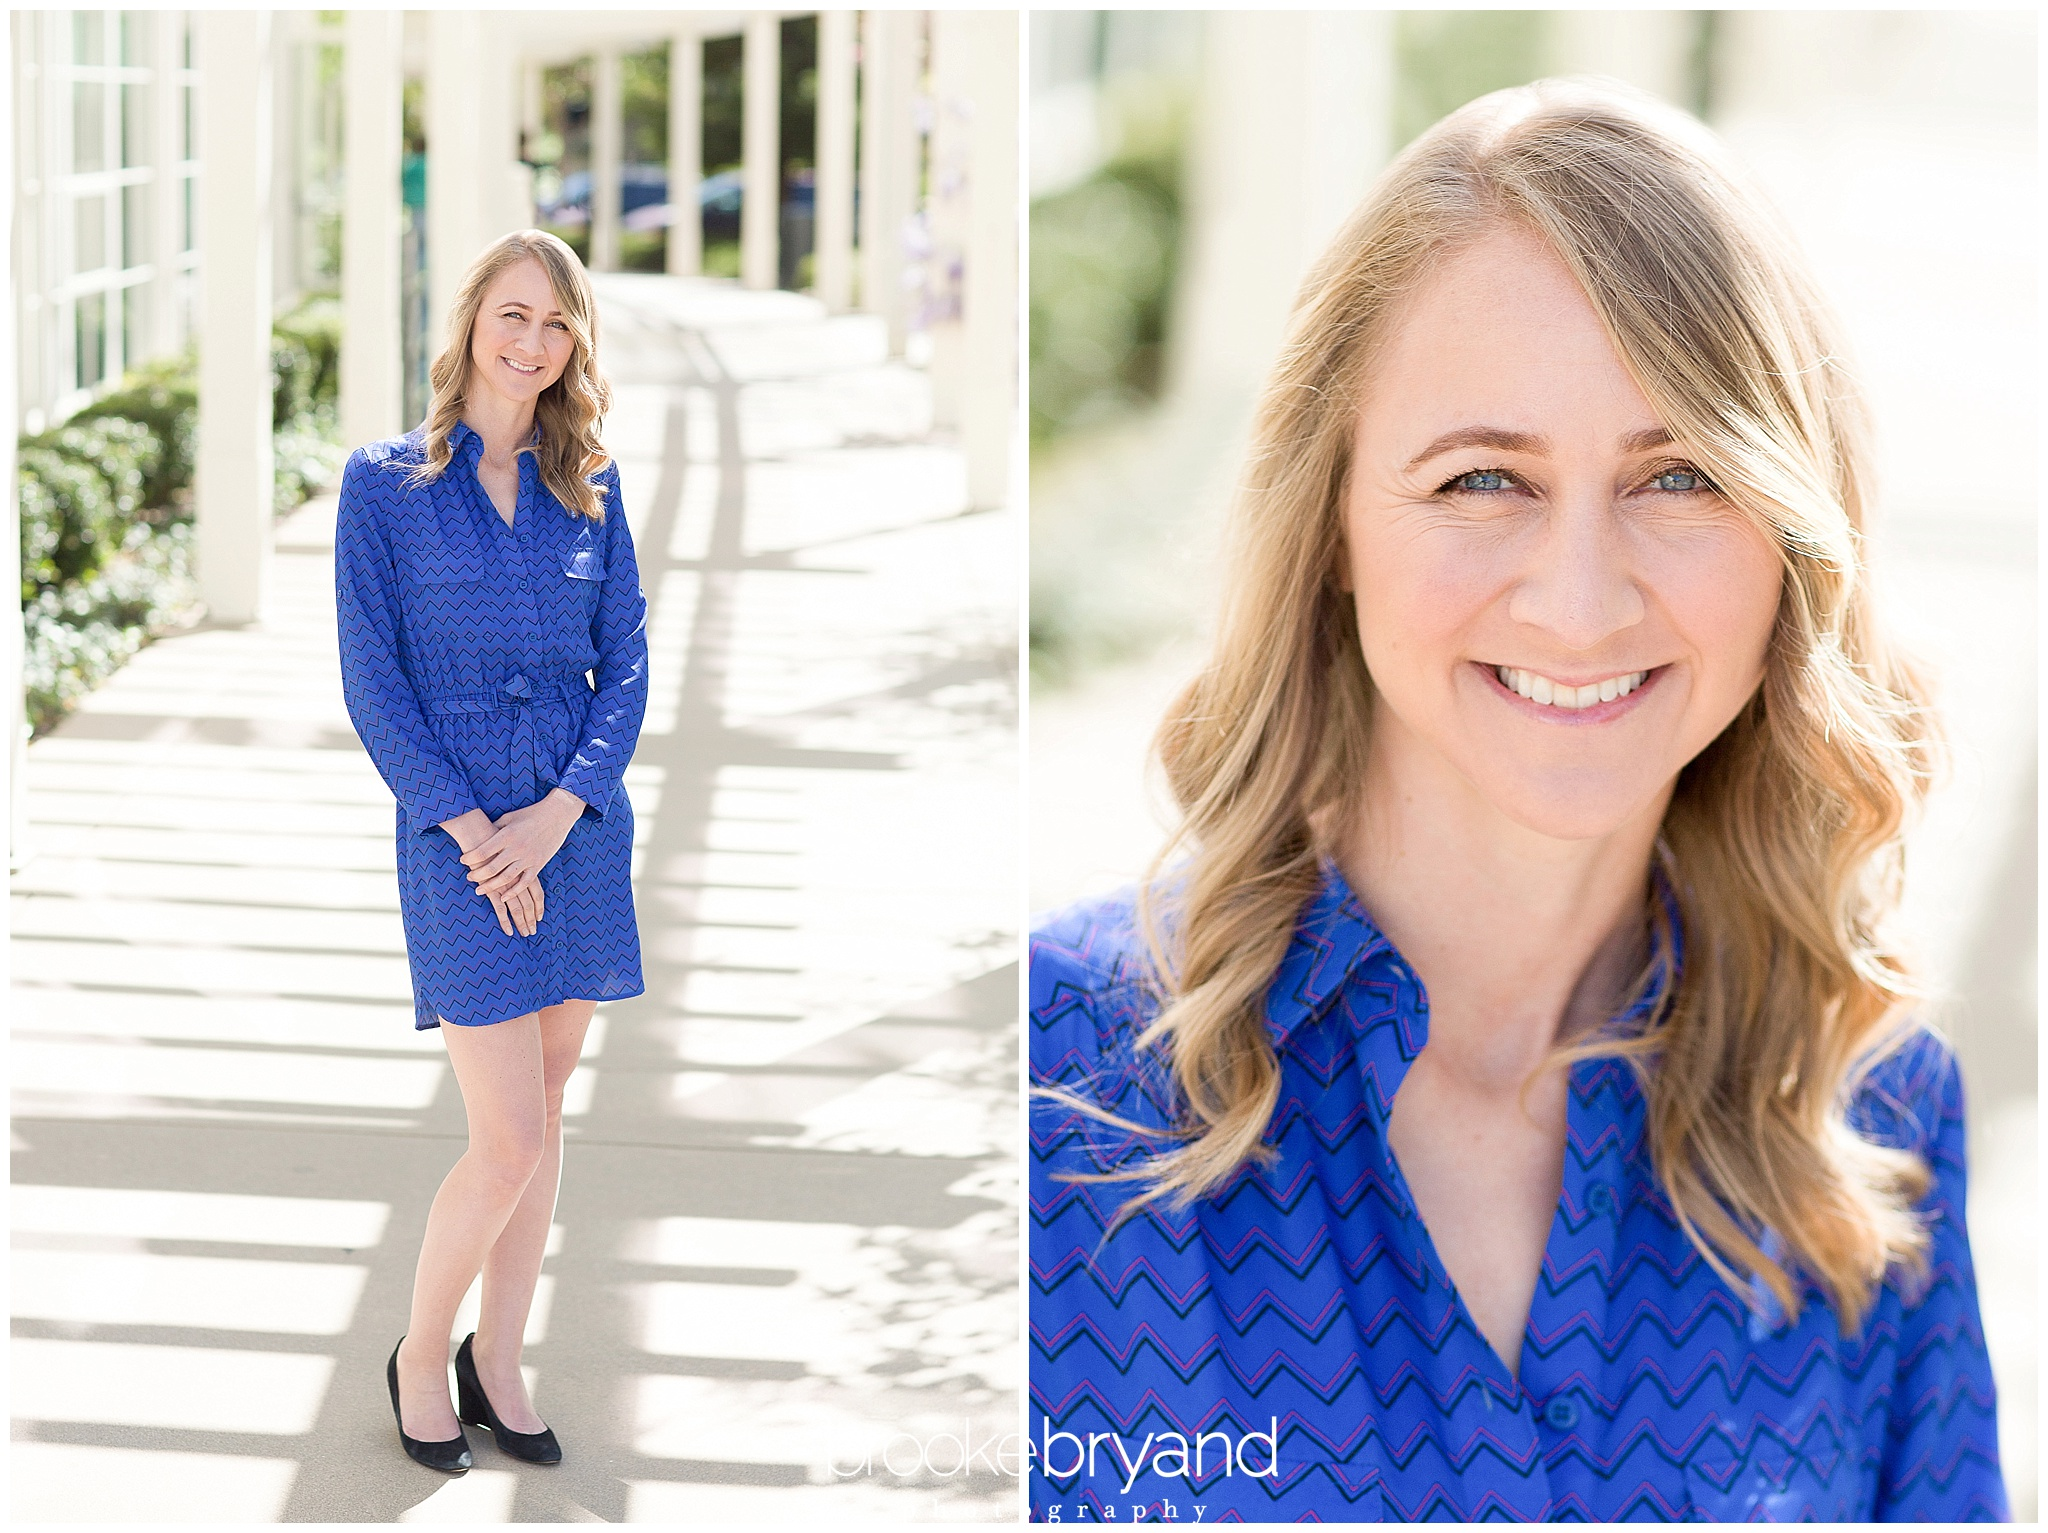 04.2016-Raleigh-Start-up-Headshot-Photographer-Brooke-Bryand-Photography-BBP_6384_r1.jpg